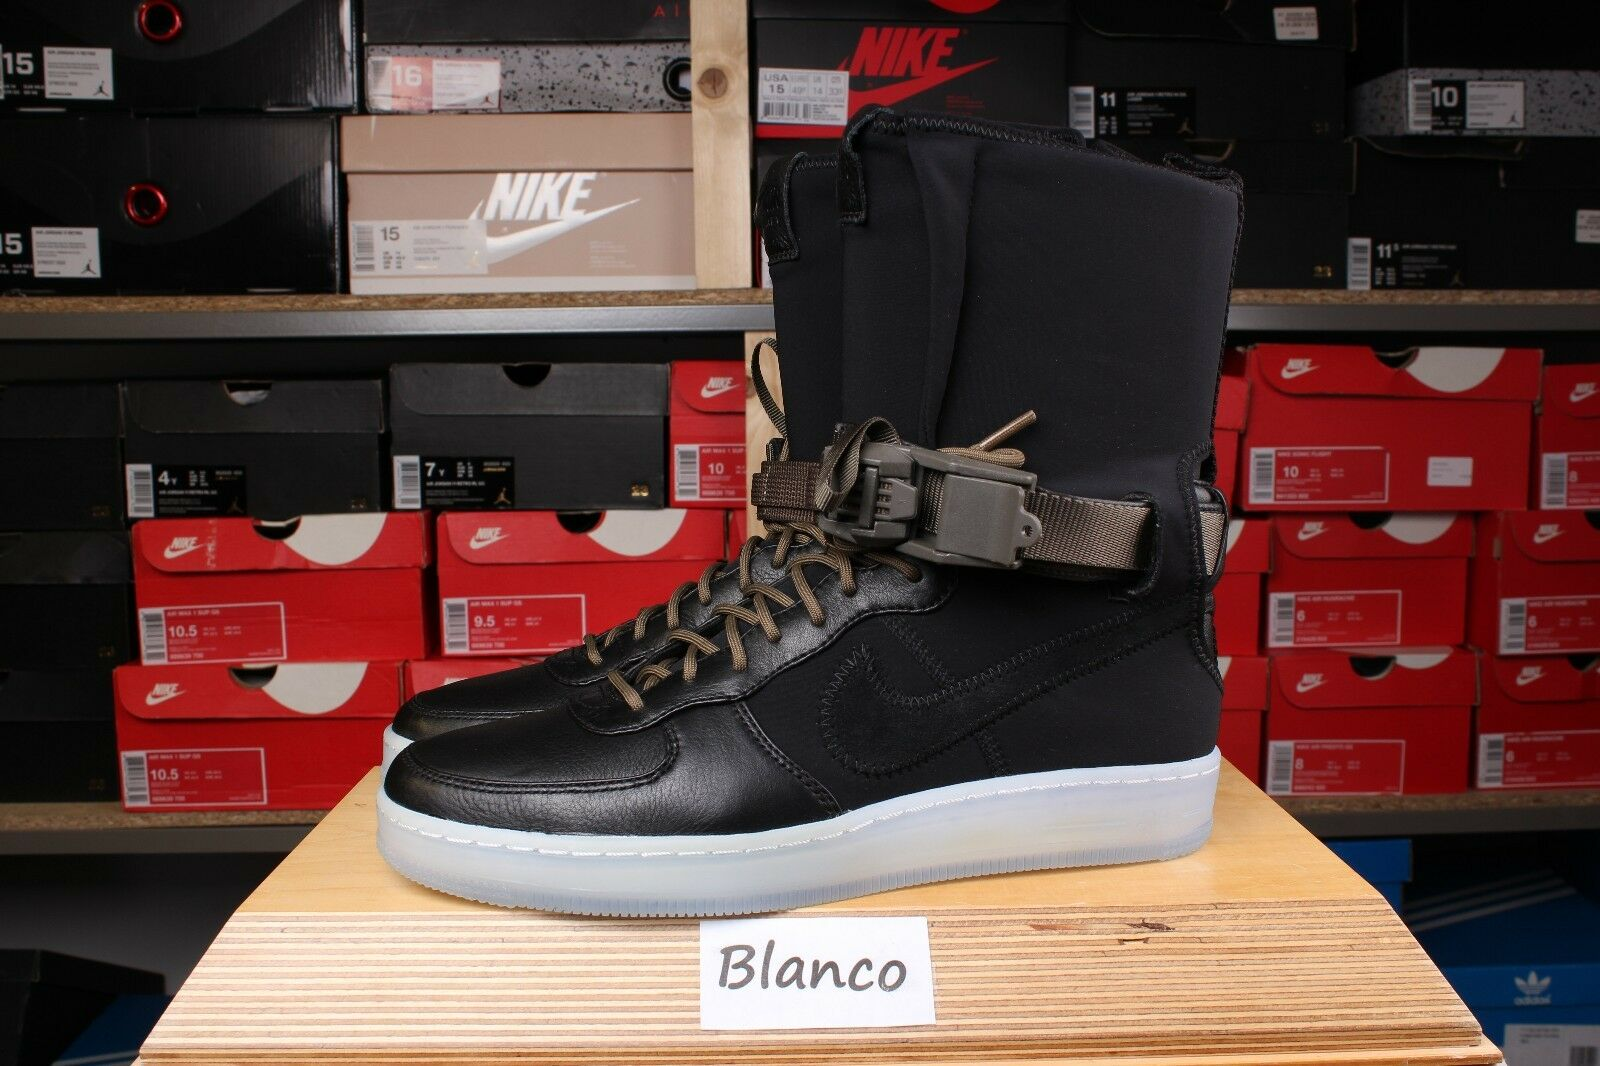 Nike Air Force 1 HI SP Acronym Black Olive US 7 - 9 Red Downtown 649941-003